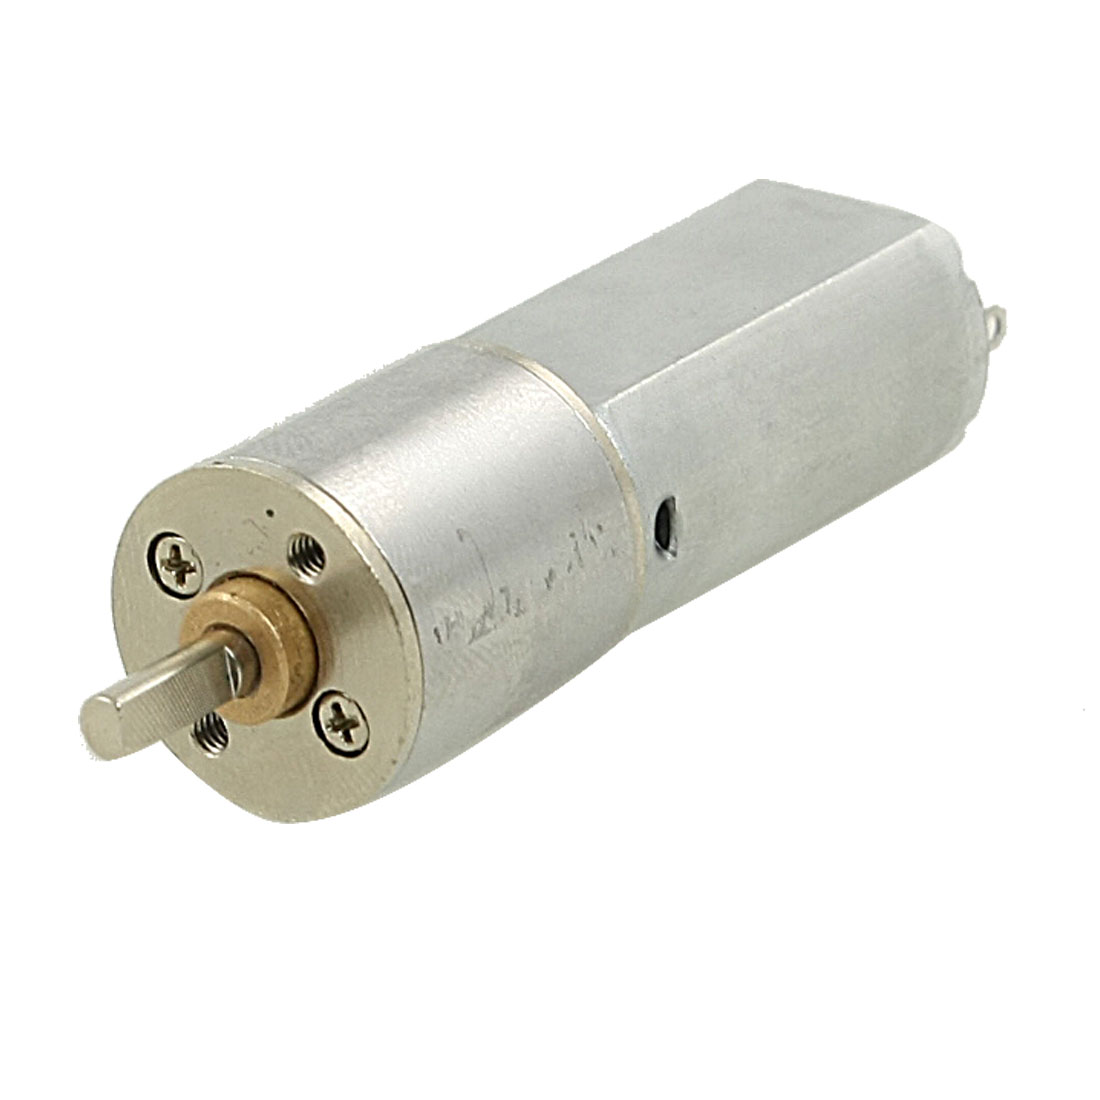 50RPM 12V 0.4A High Torque Mini Electric DC Geared Motor